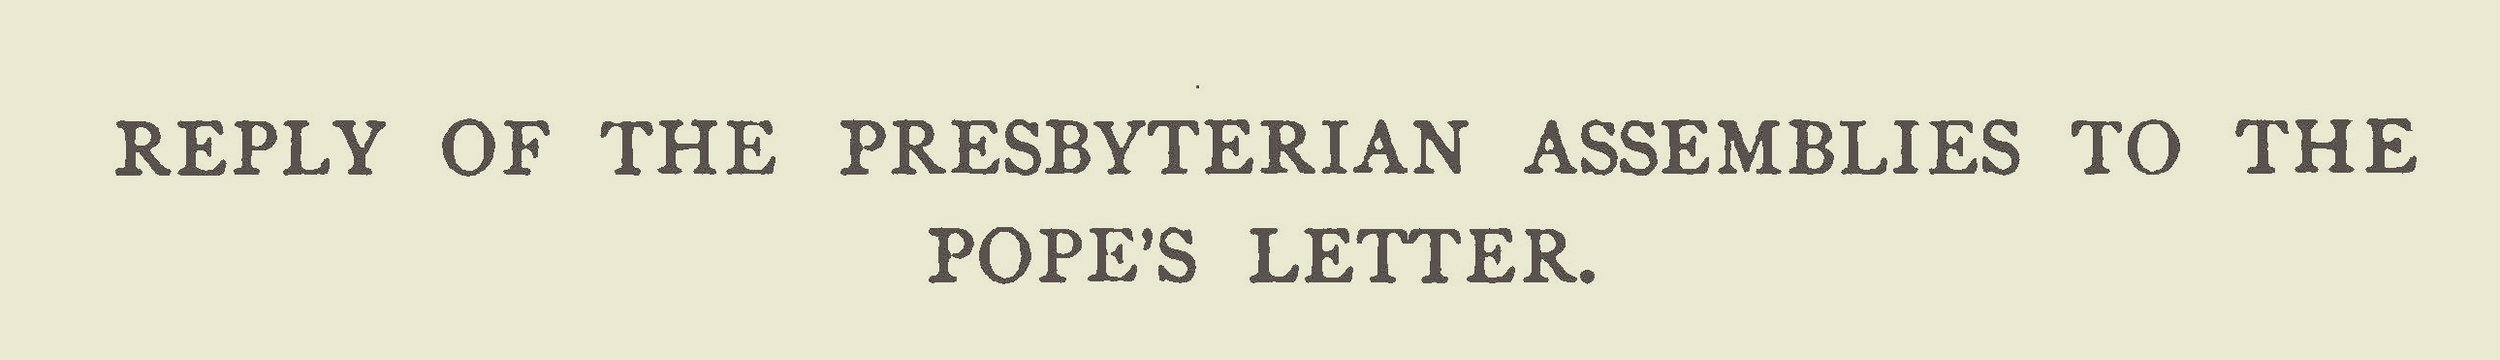 This letter was signed by Moderators of the General Assembly Presbyterian Church M.W. Jacobus and P.H. Fowler, but was authored by Charles Hodge.